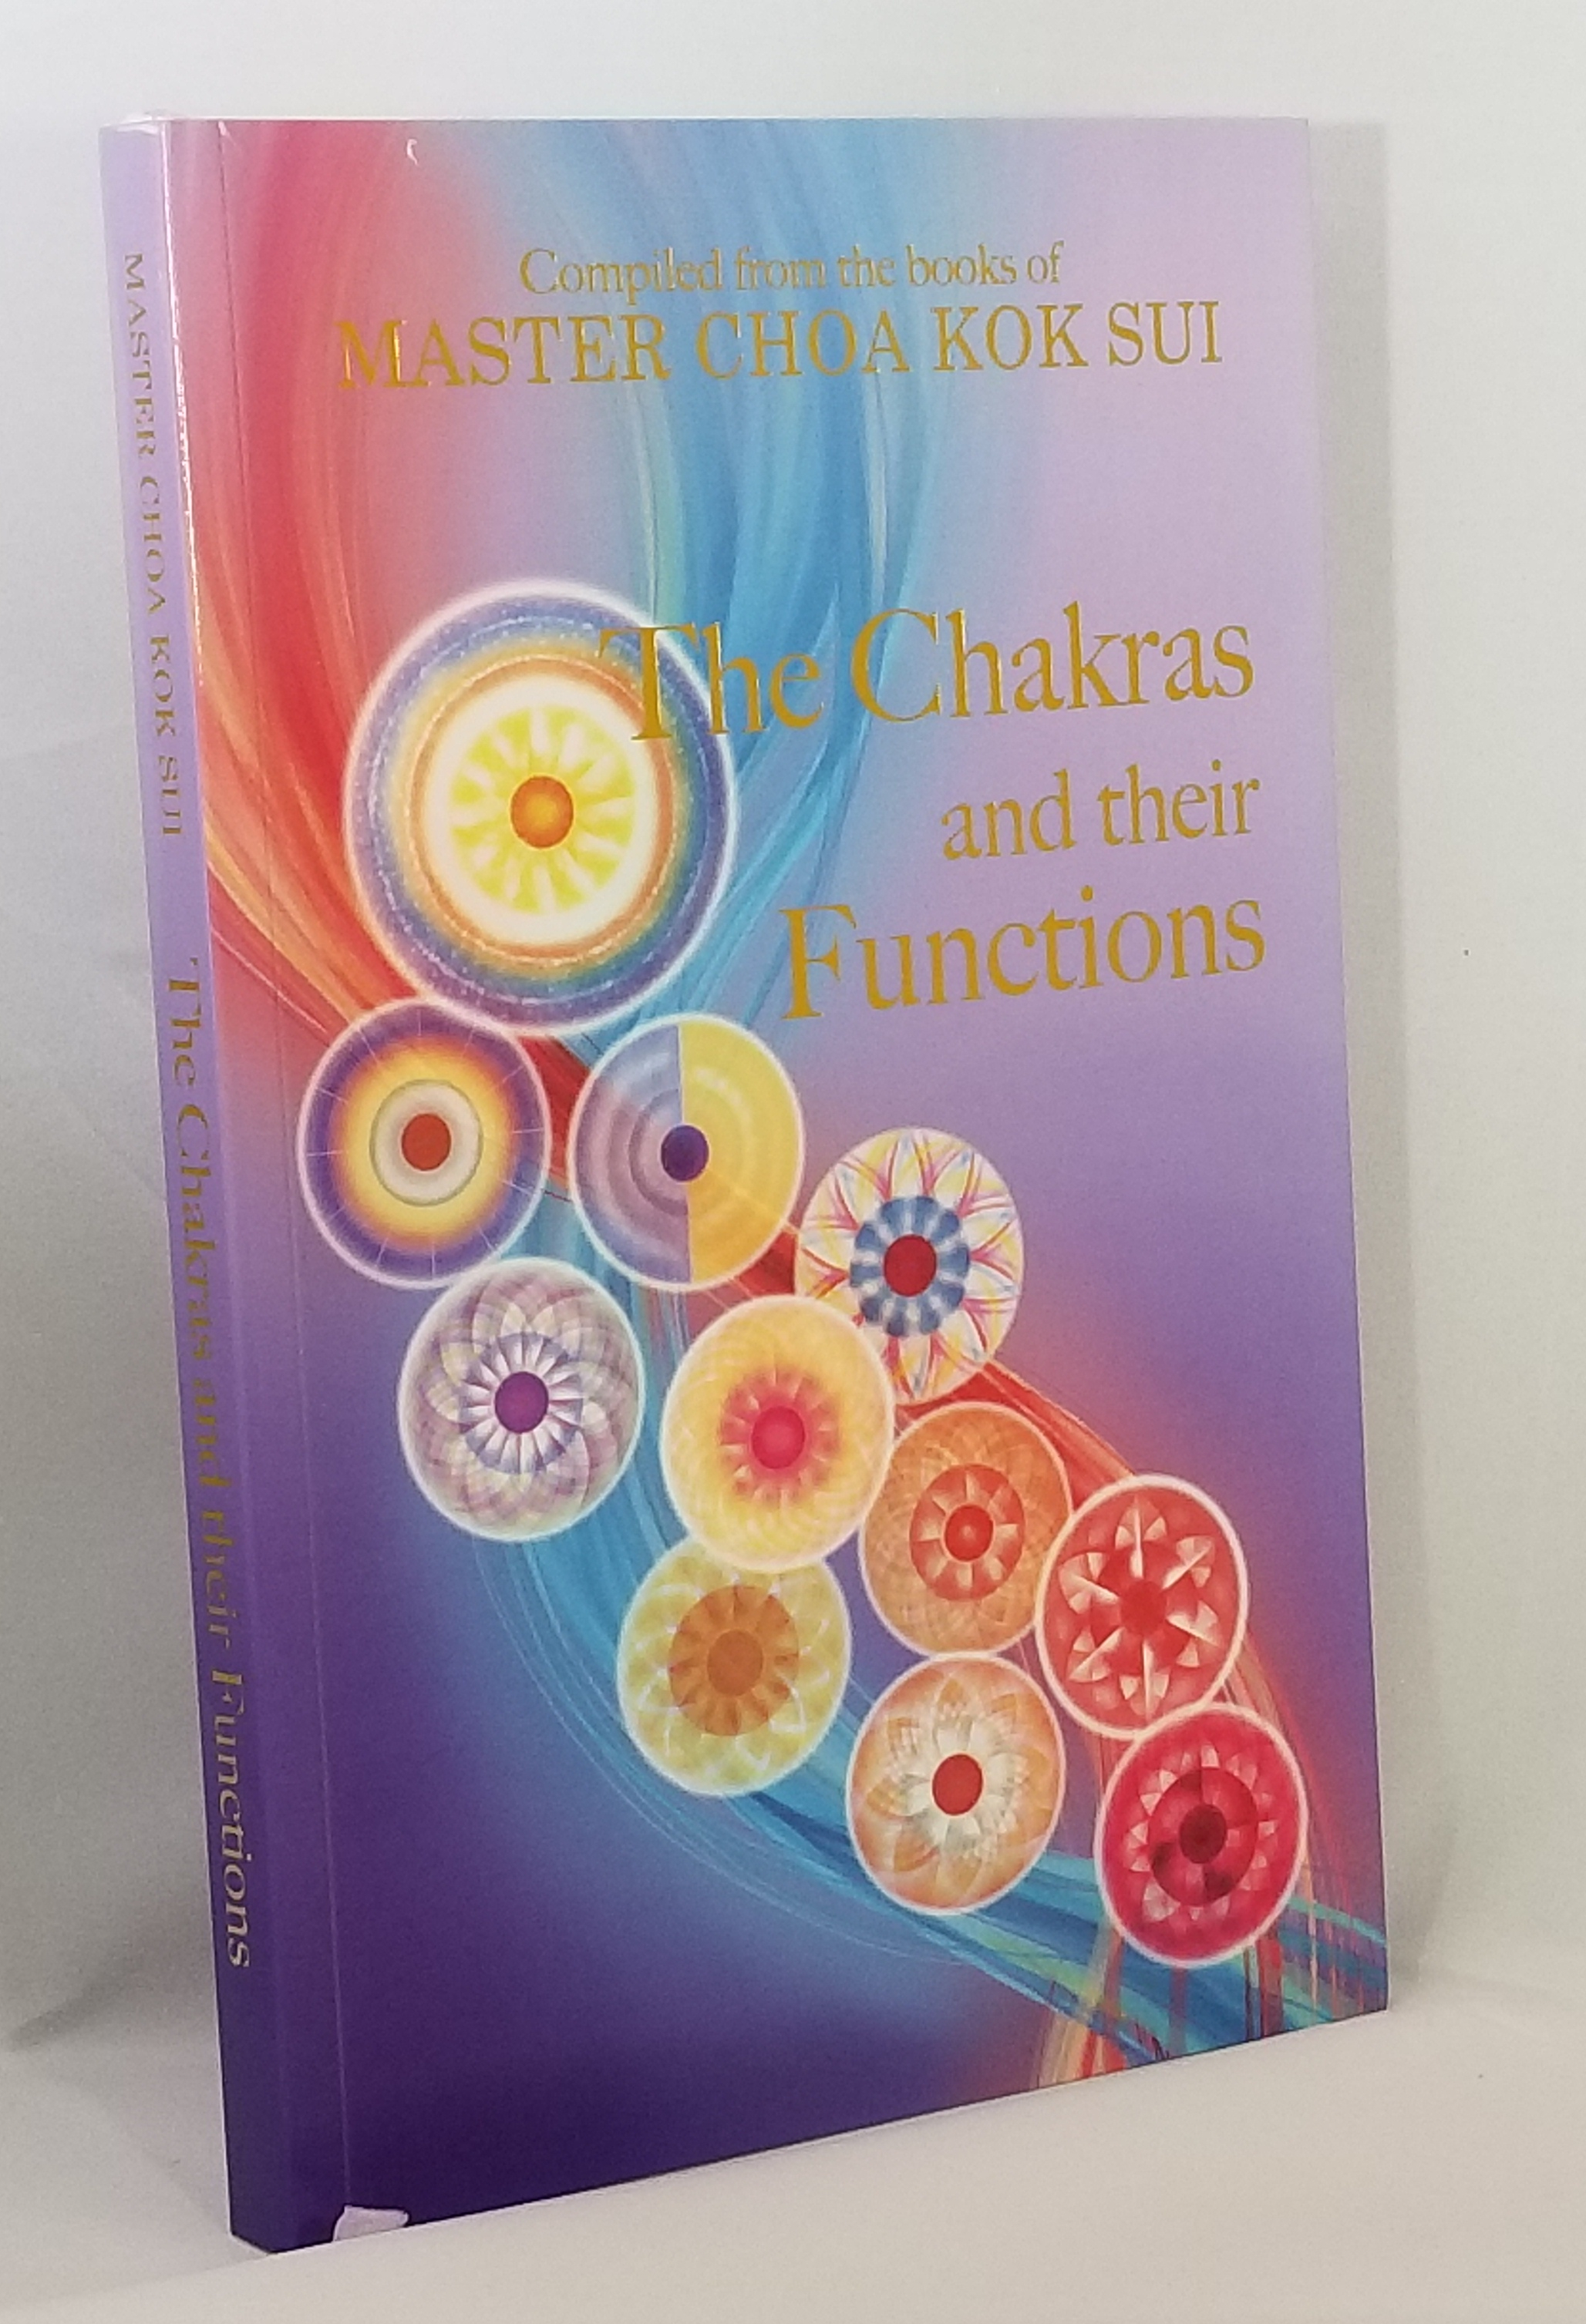 The Chakras and their Functions